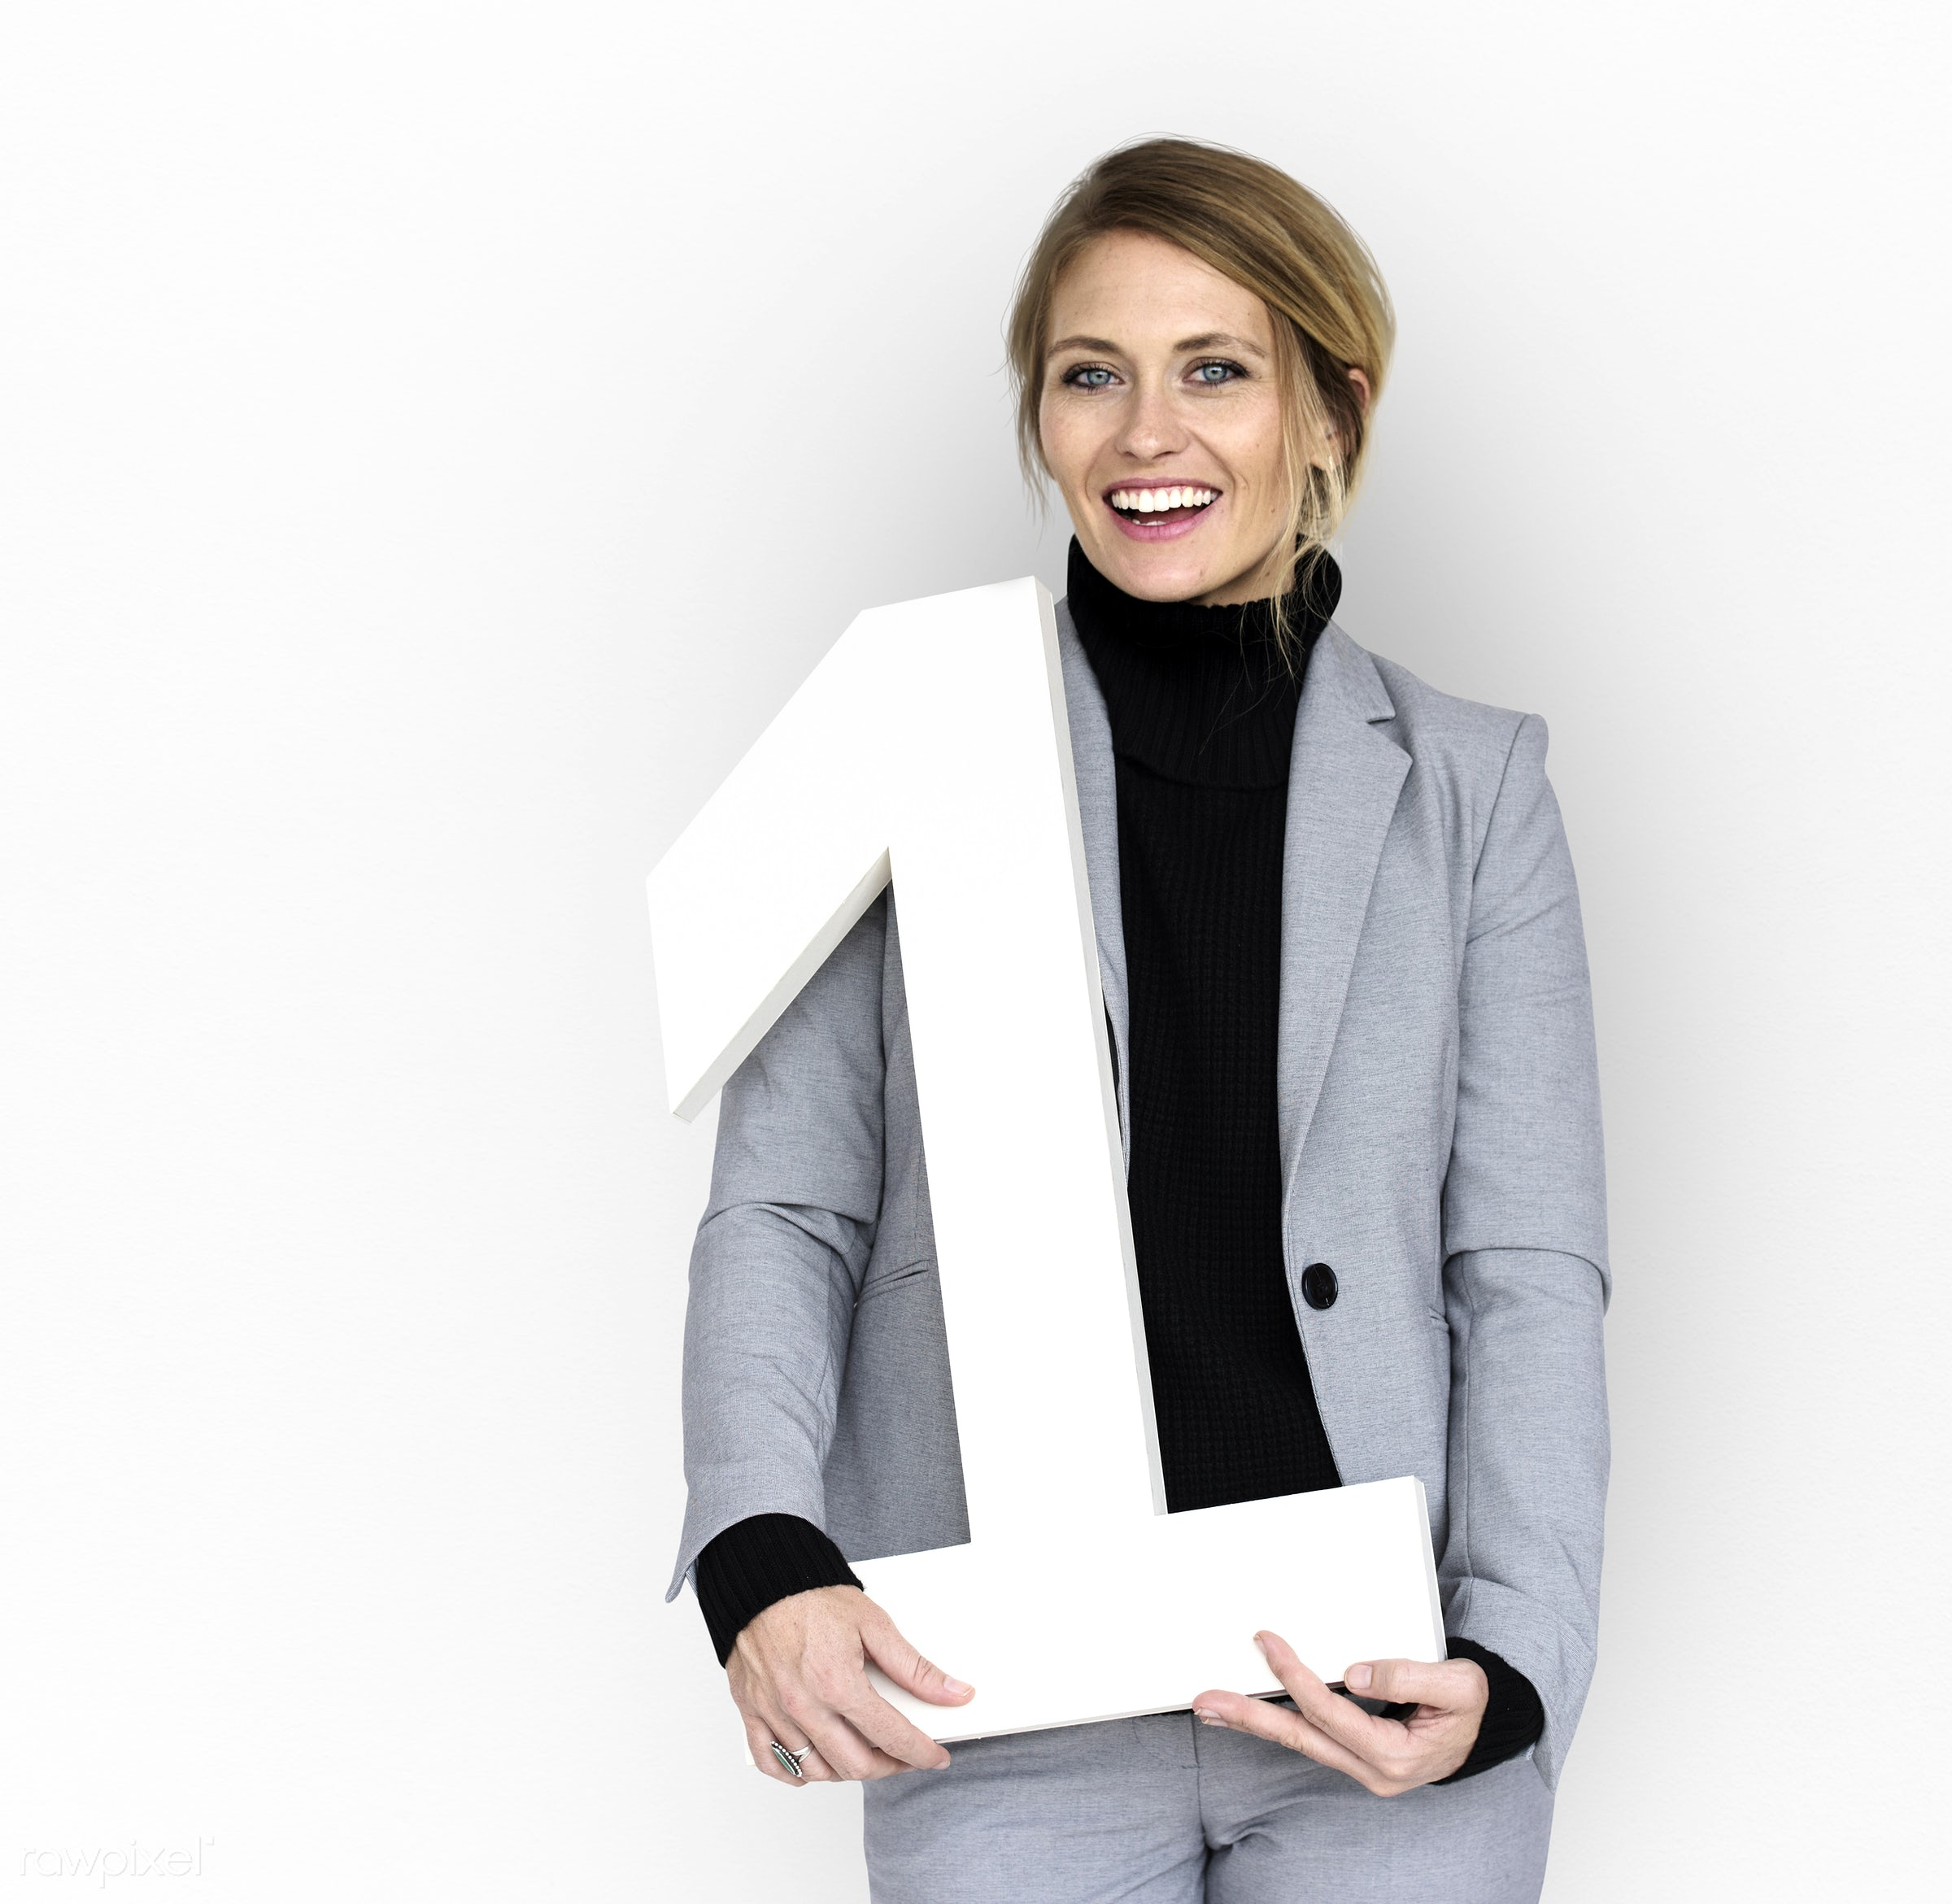 isolated on white, one, woman, suit, number, number one, smiling, hold, smile, happy, prop